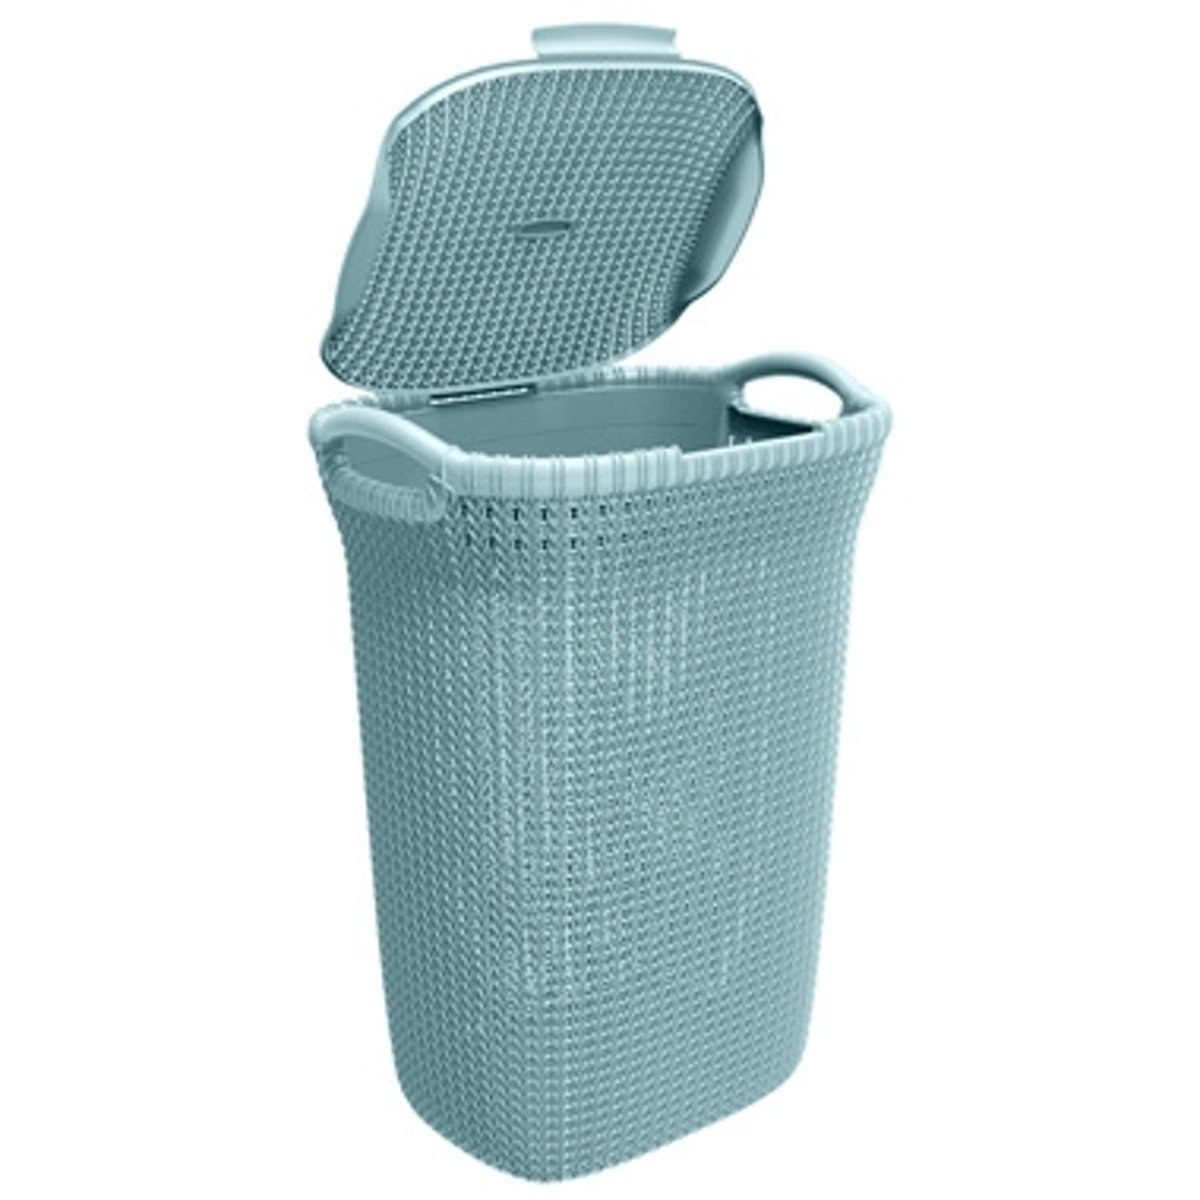 Wasmand Rek Affordable Curver Knit Wasbox L Misty Blue With Rieten